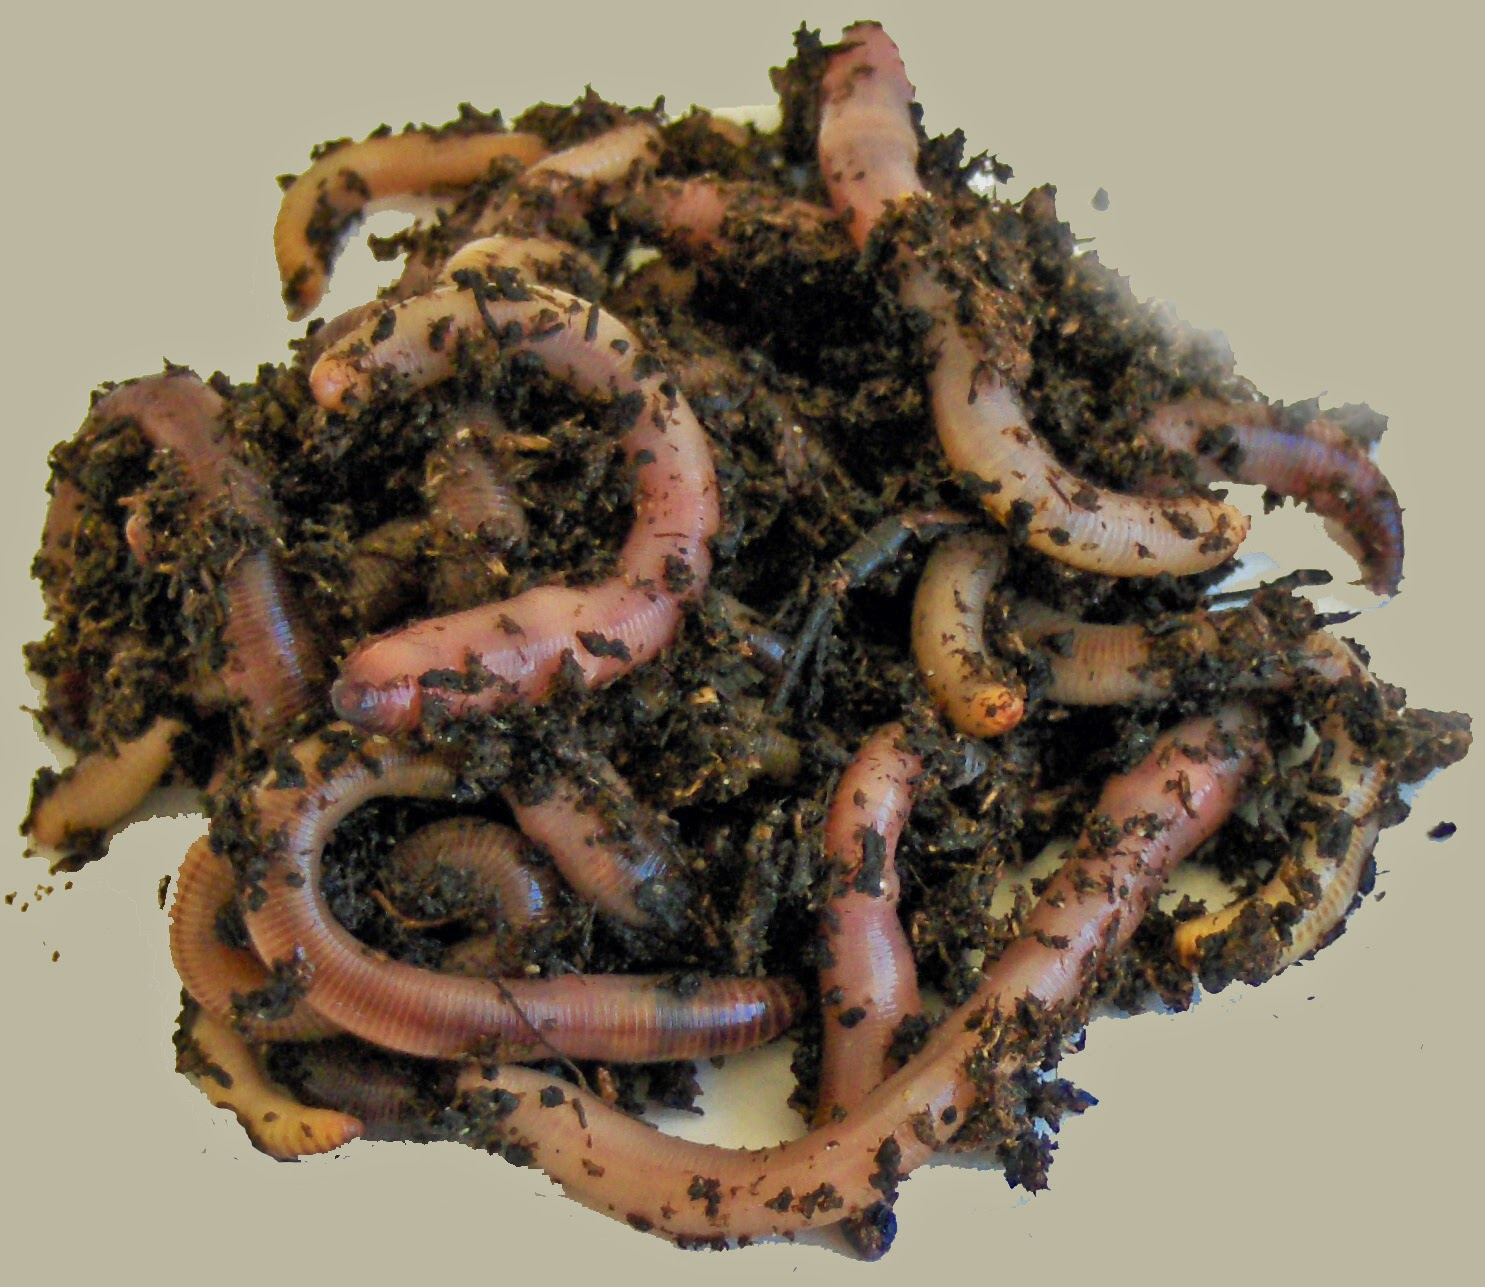 Earthworms are good for your garden.  Add some today.